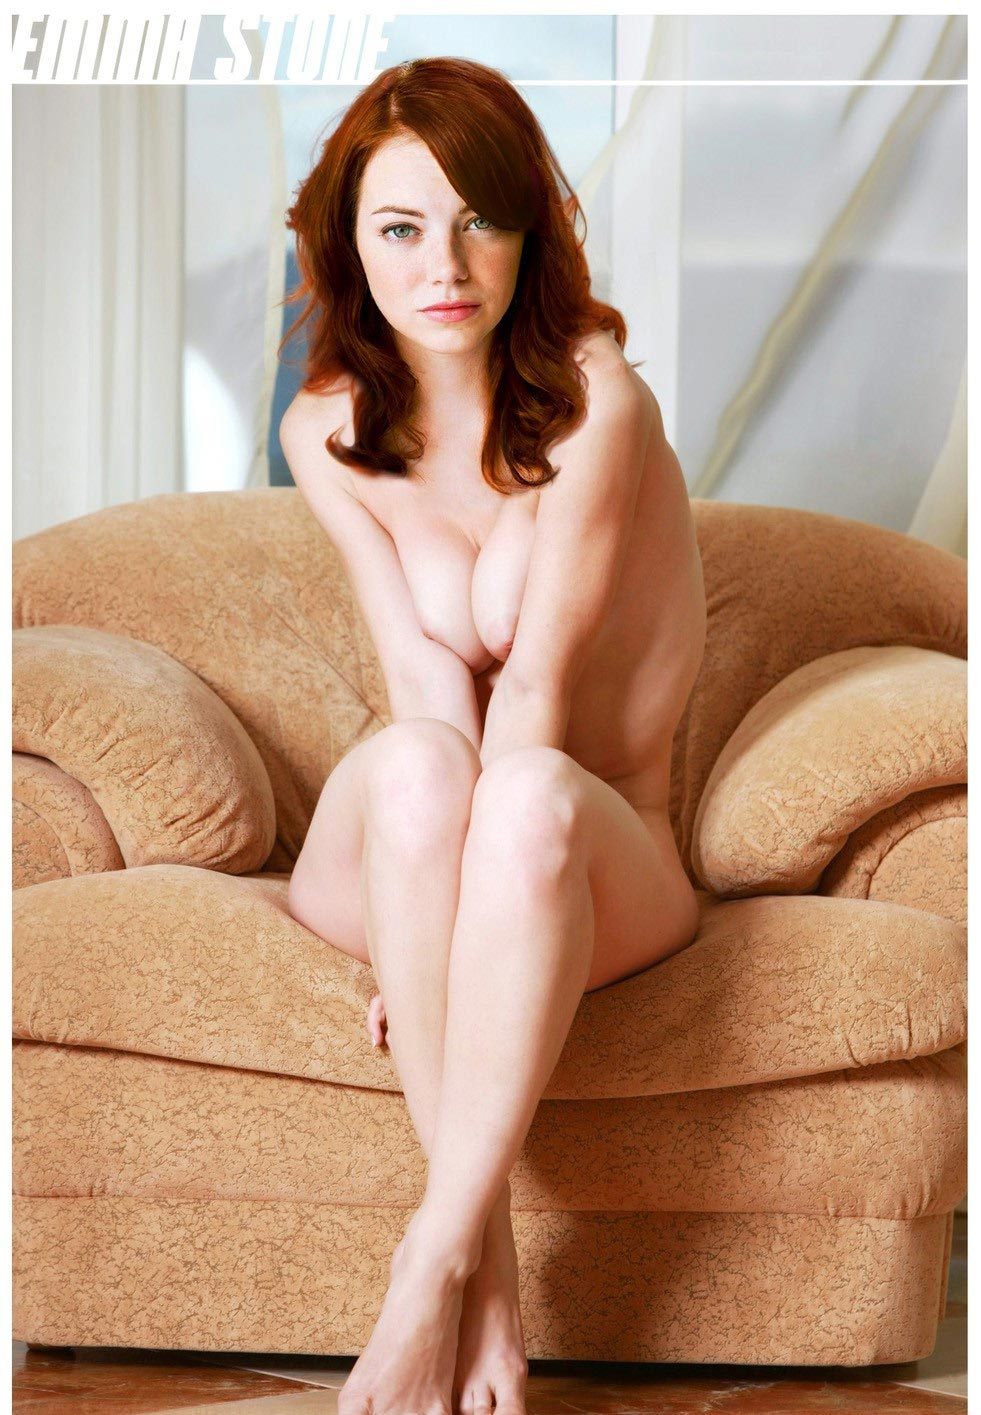 emma-stone-nude-big-tits-and-sexy7